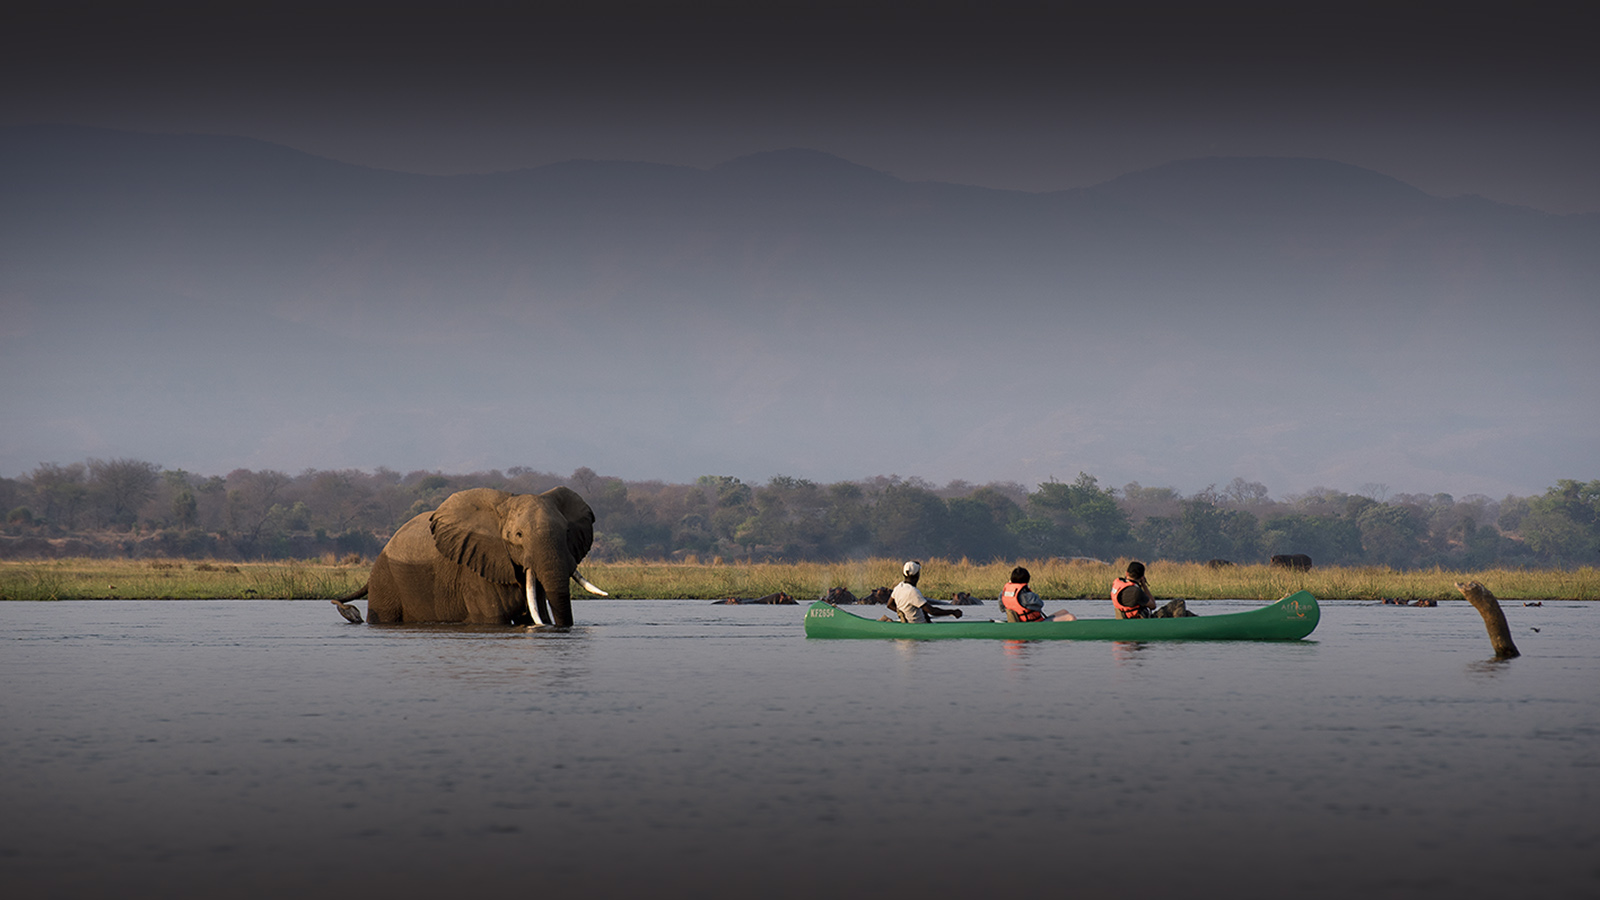 zambezi expeditions mana-pools-national-park-lodges-zimbabwe-safaris-african-bush-camps-elephant-in-water